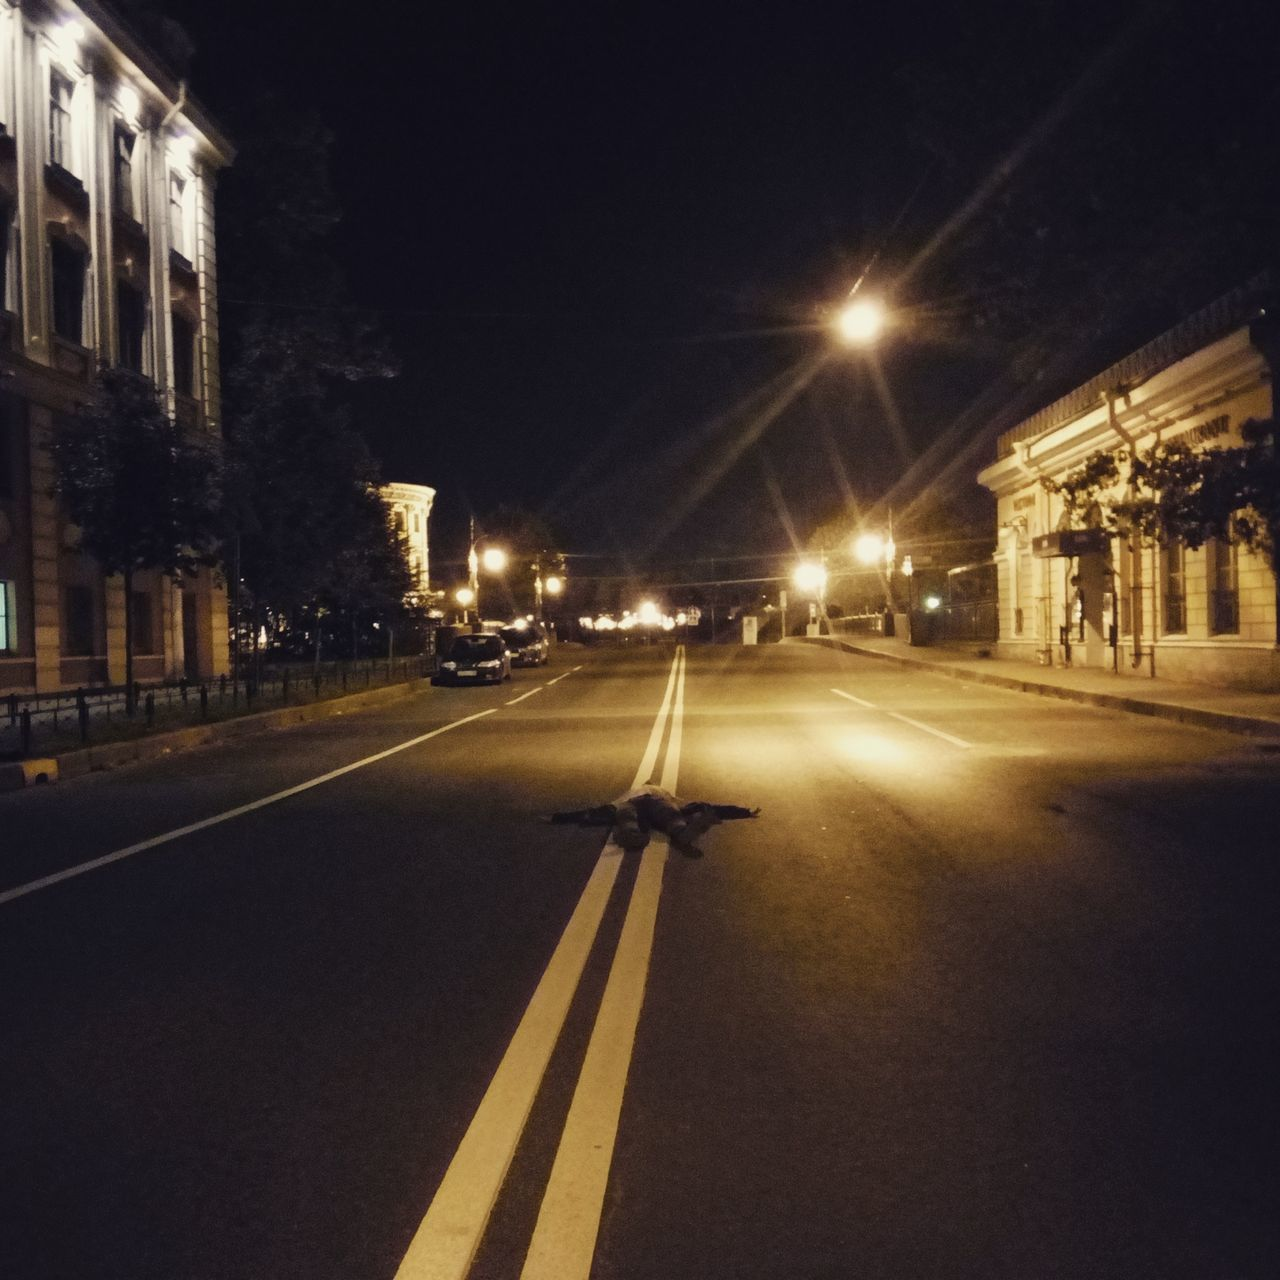 illuminated, night, architecture, building exterior, built structure, road, transportation, the way forward, street light, street, outdoors, no people, city, sky